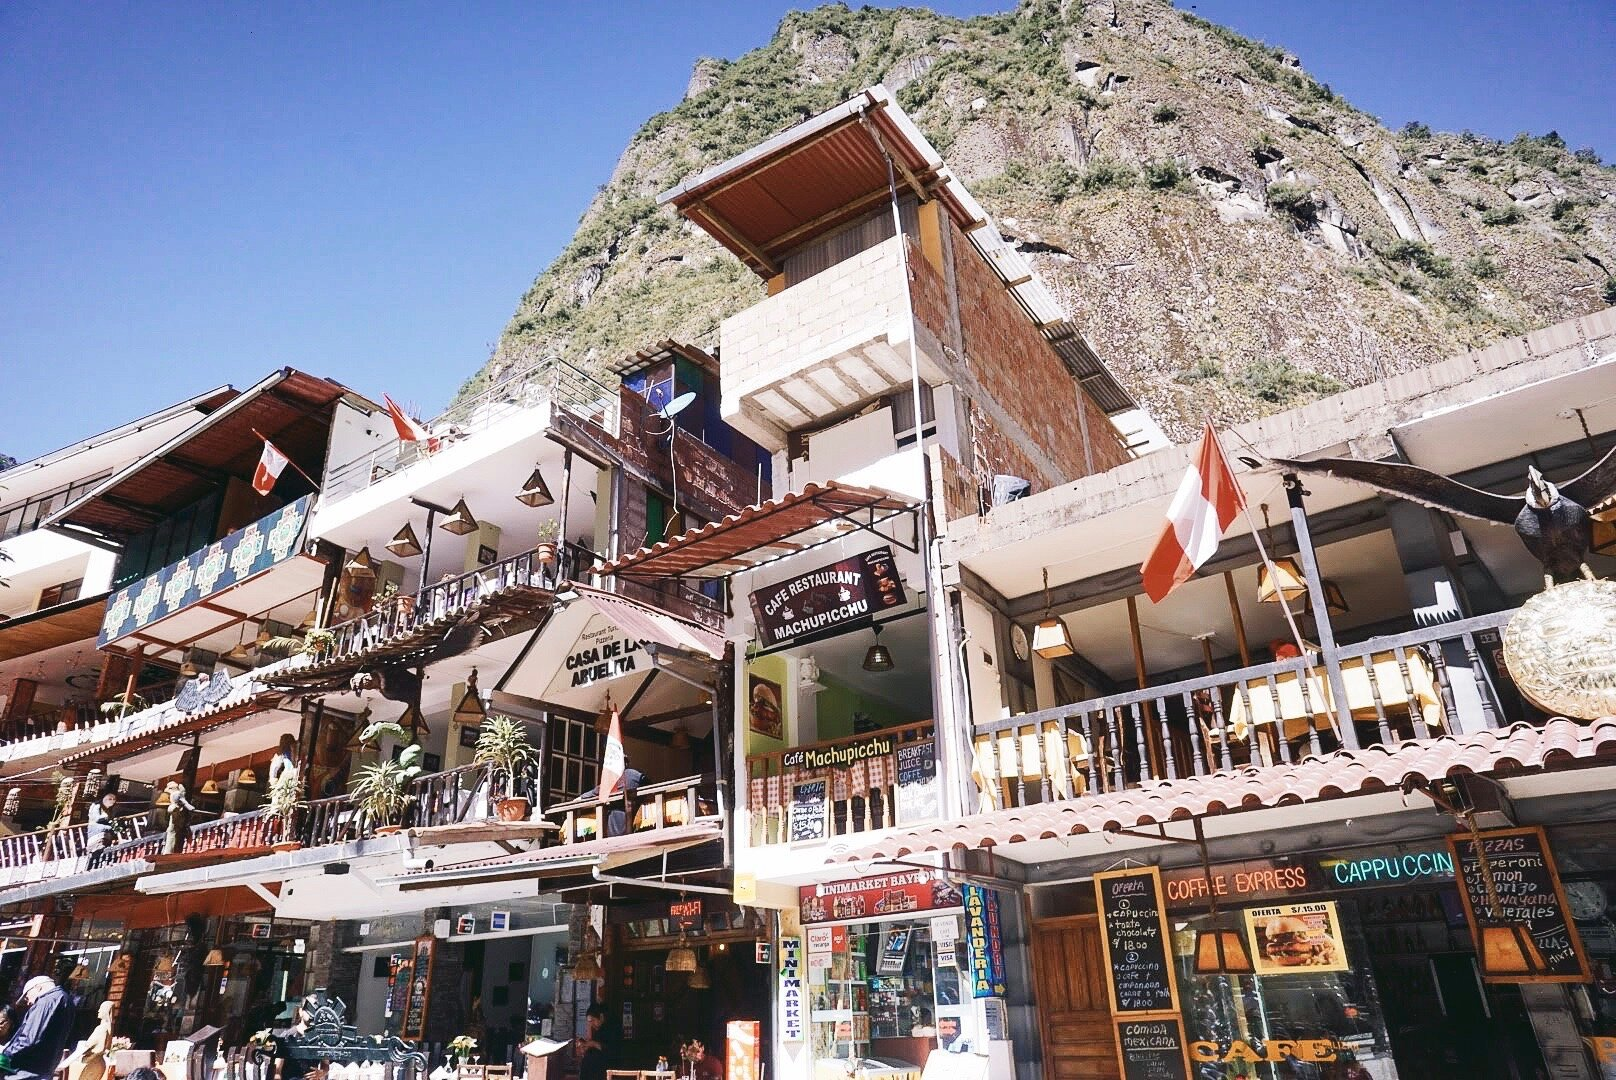 Shops, restaurants and hostels in Aguas Calientes main plaza